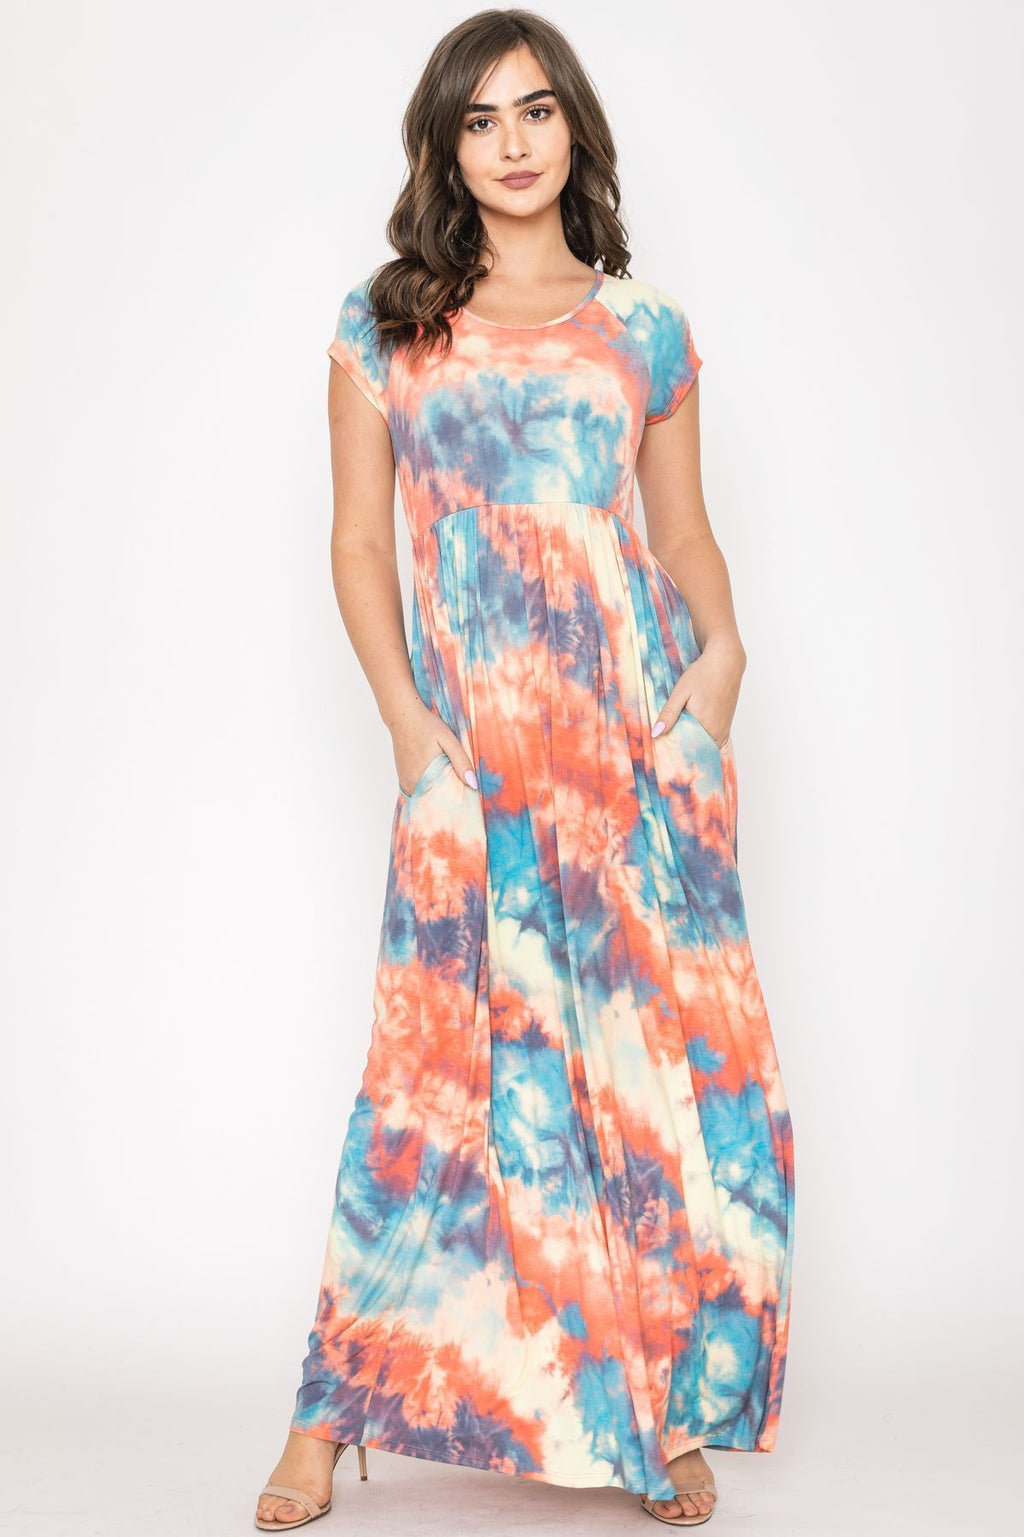 Orange Aqua Tie Dye Cap Sleeve Maxi Dress